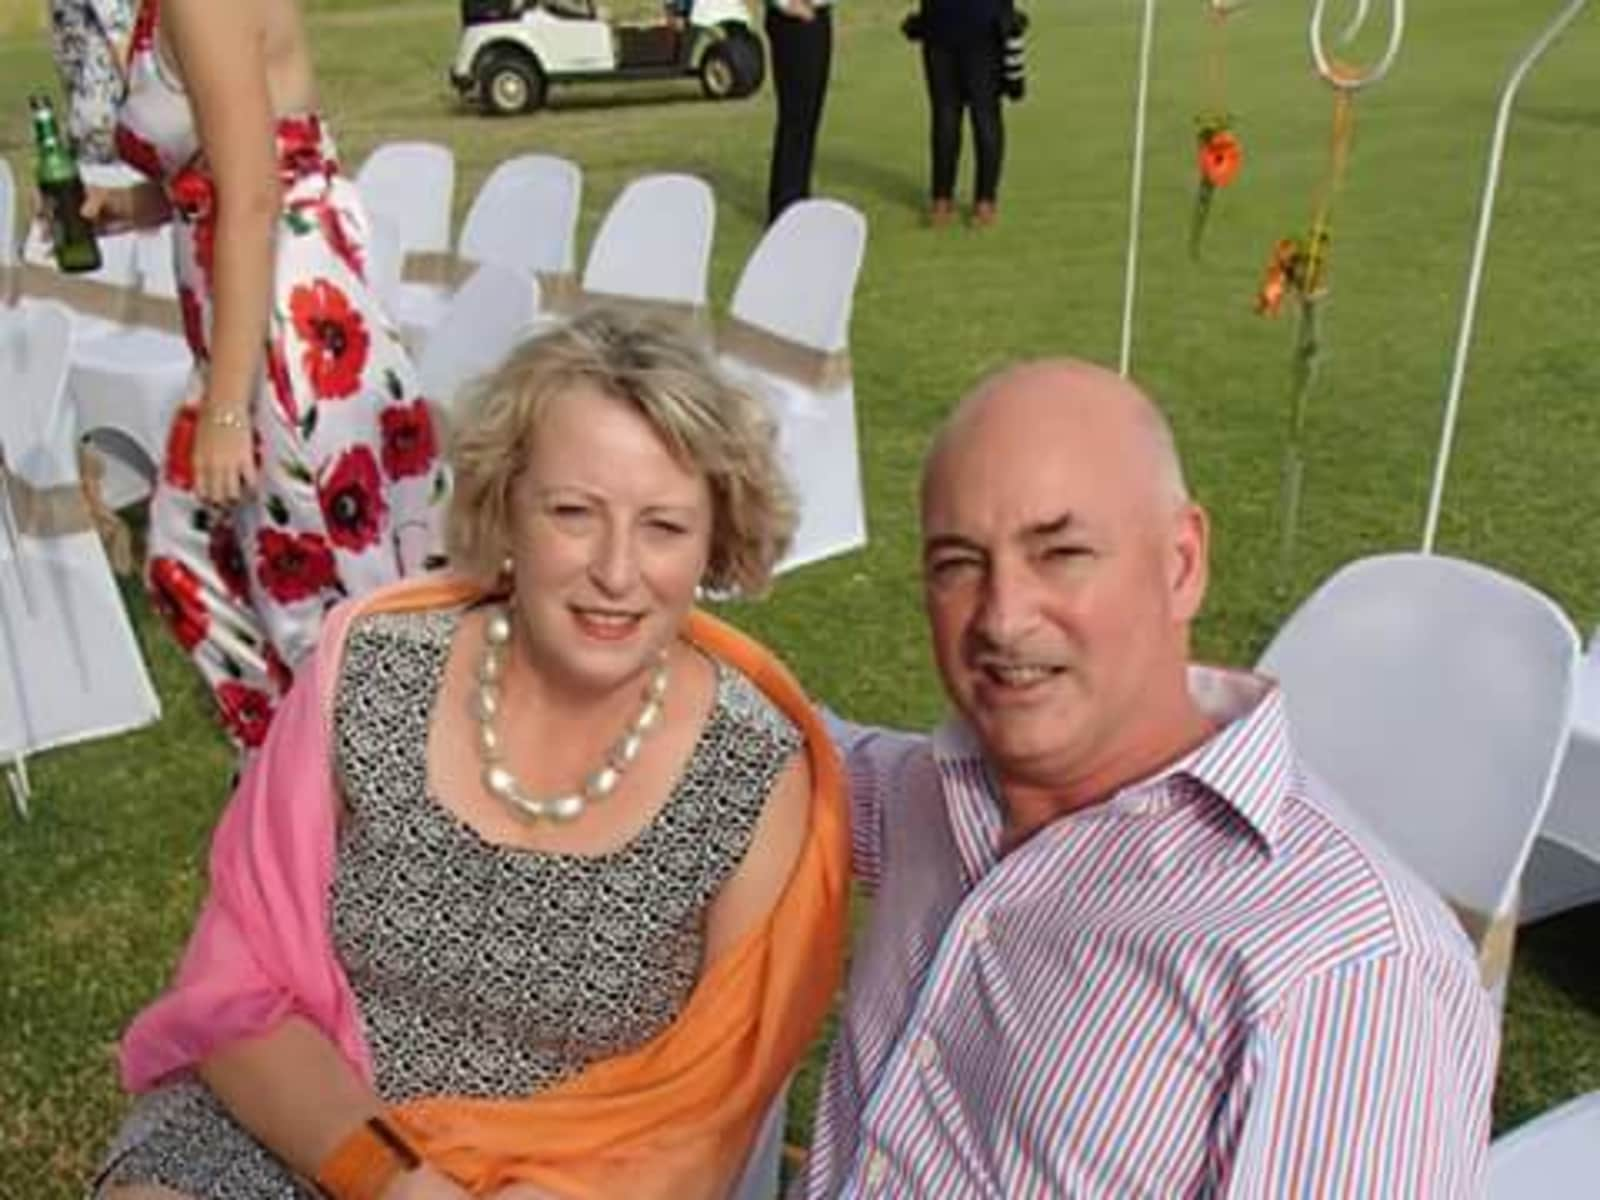 Margaret & Kevin from Palmerston North, New Zealand